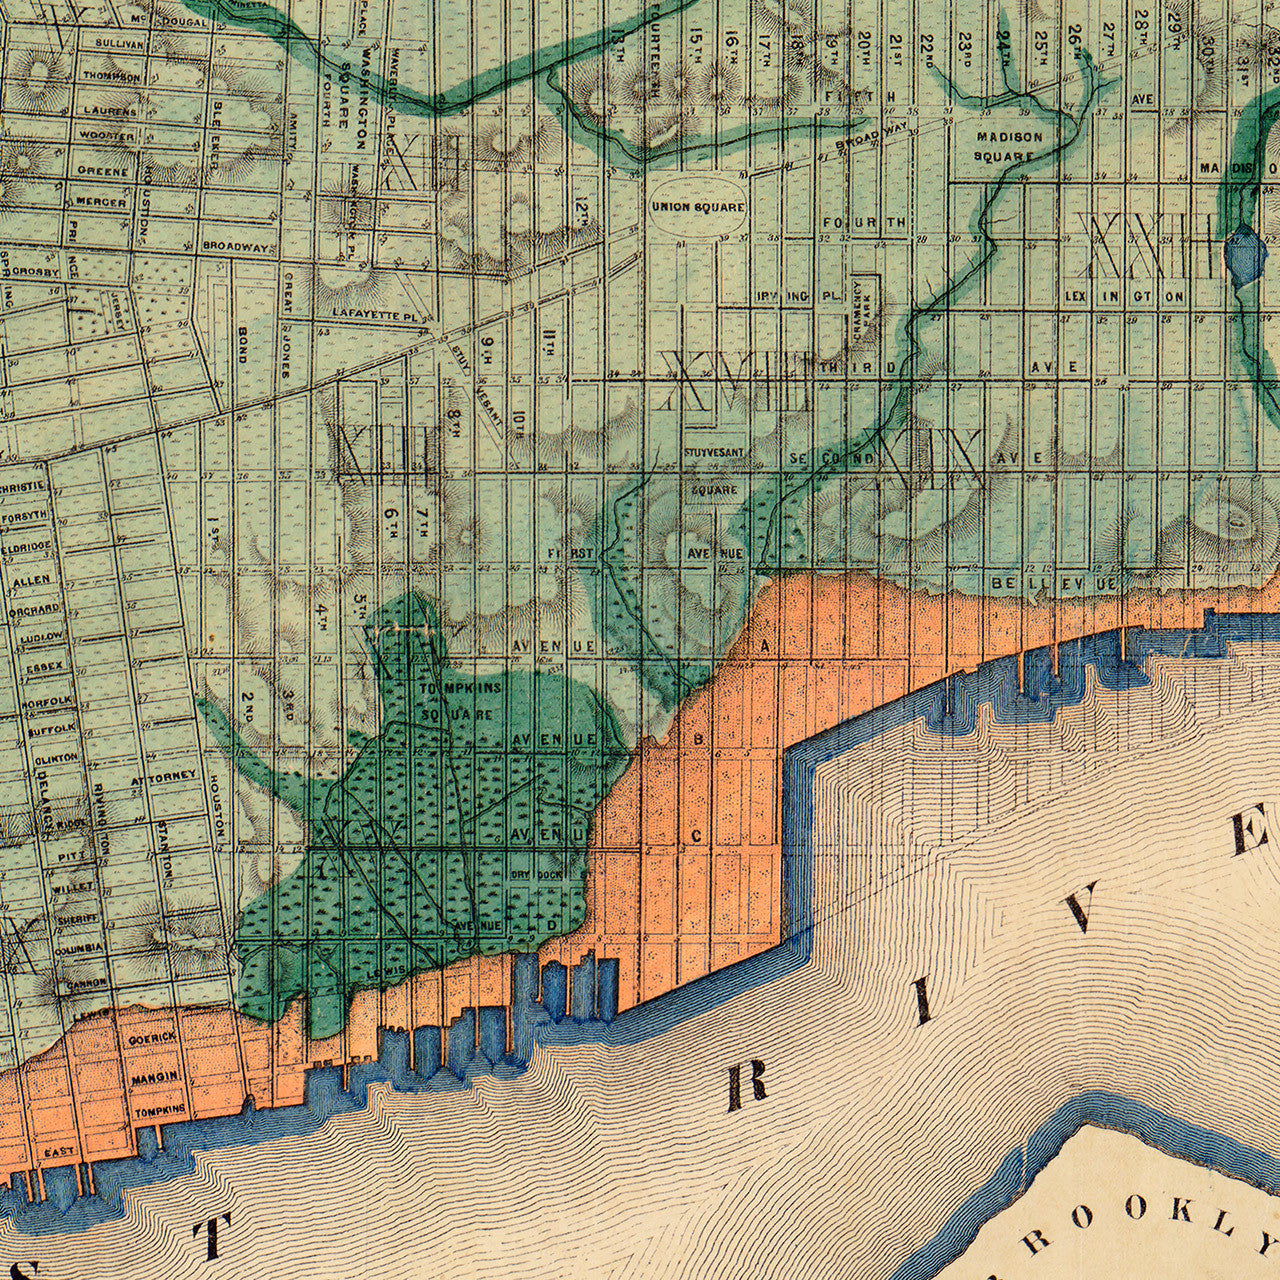 Topographical Sanitary Map of New York 1865 E Viele Battlemapsus